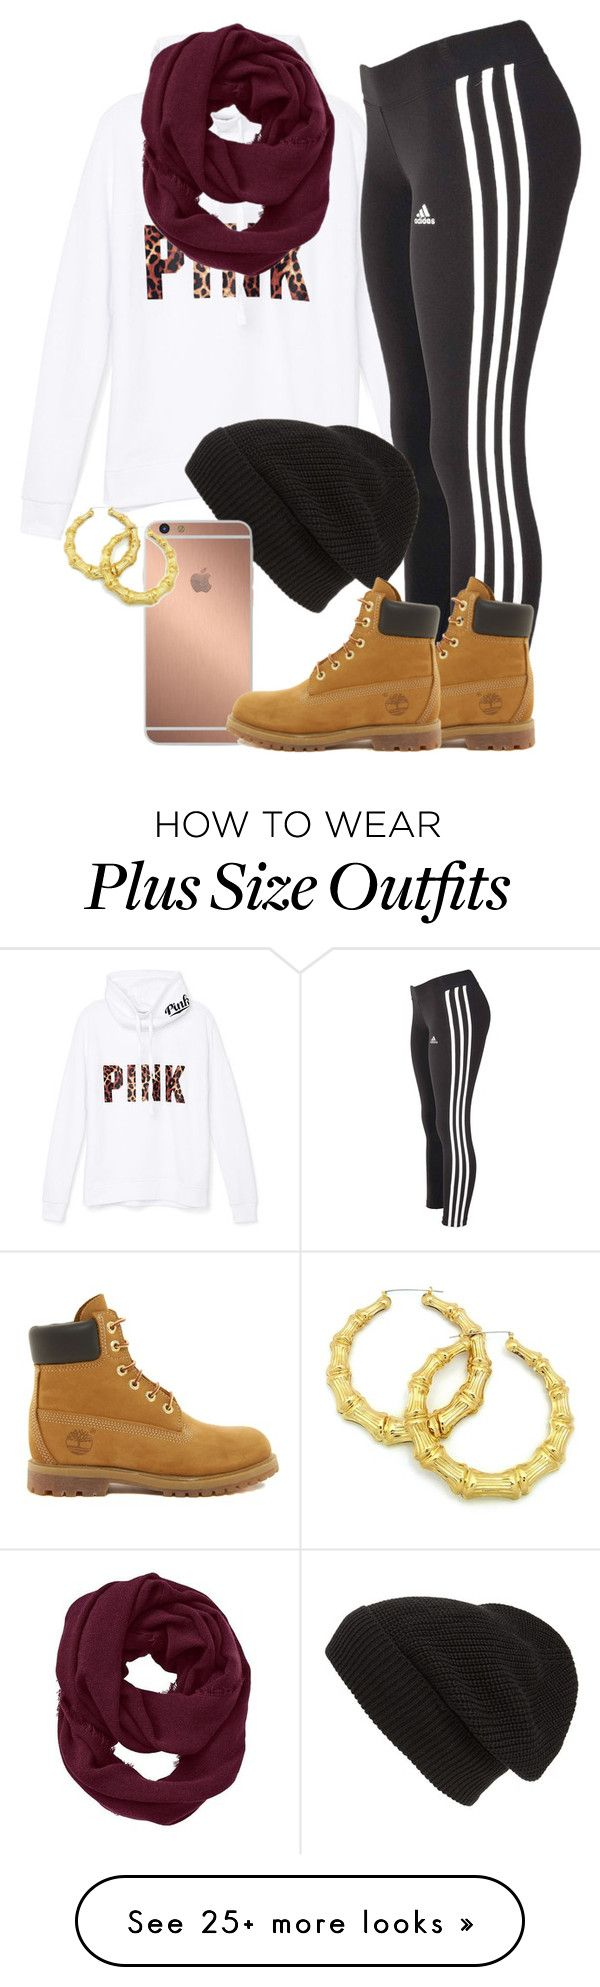 """""""My ootd"""" by thetruthdoesnothavetohurt on Polyvore featuring Victoria's Secret PINK, adidas, Timberland, Phase 3, Mura and Athleta"""